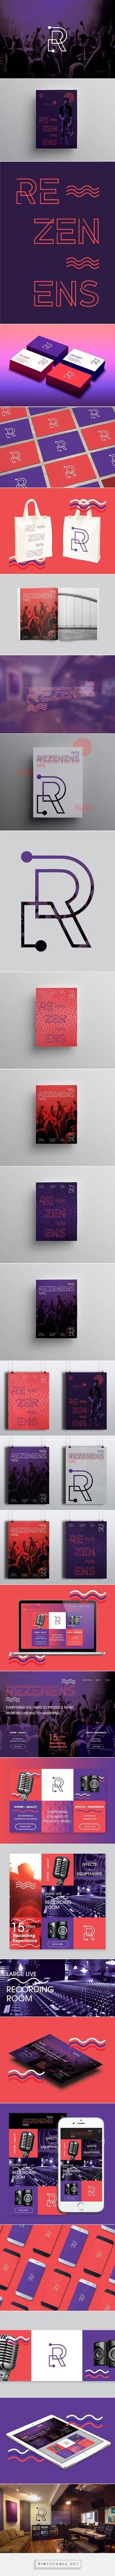 REZENENS Branding on Behance | Fivestar Branding – Design and Branding Agency & Inspiration Gallery